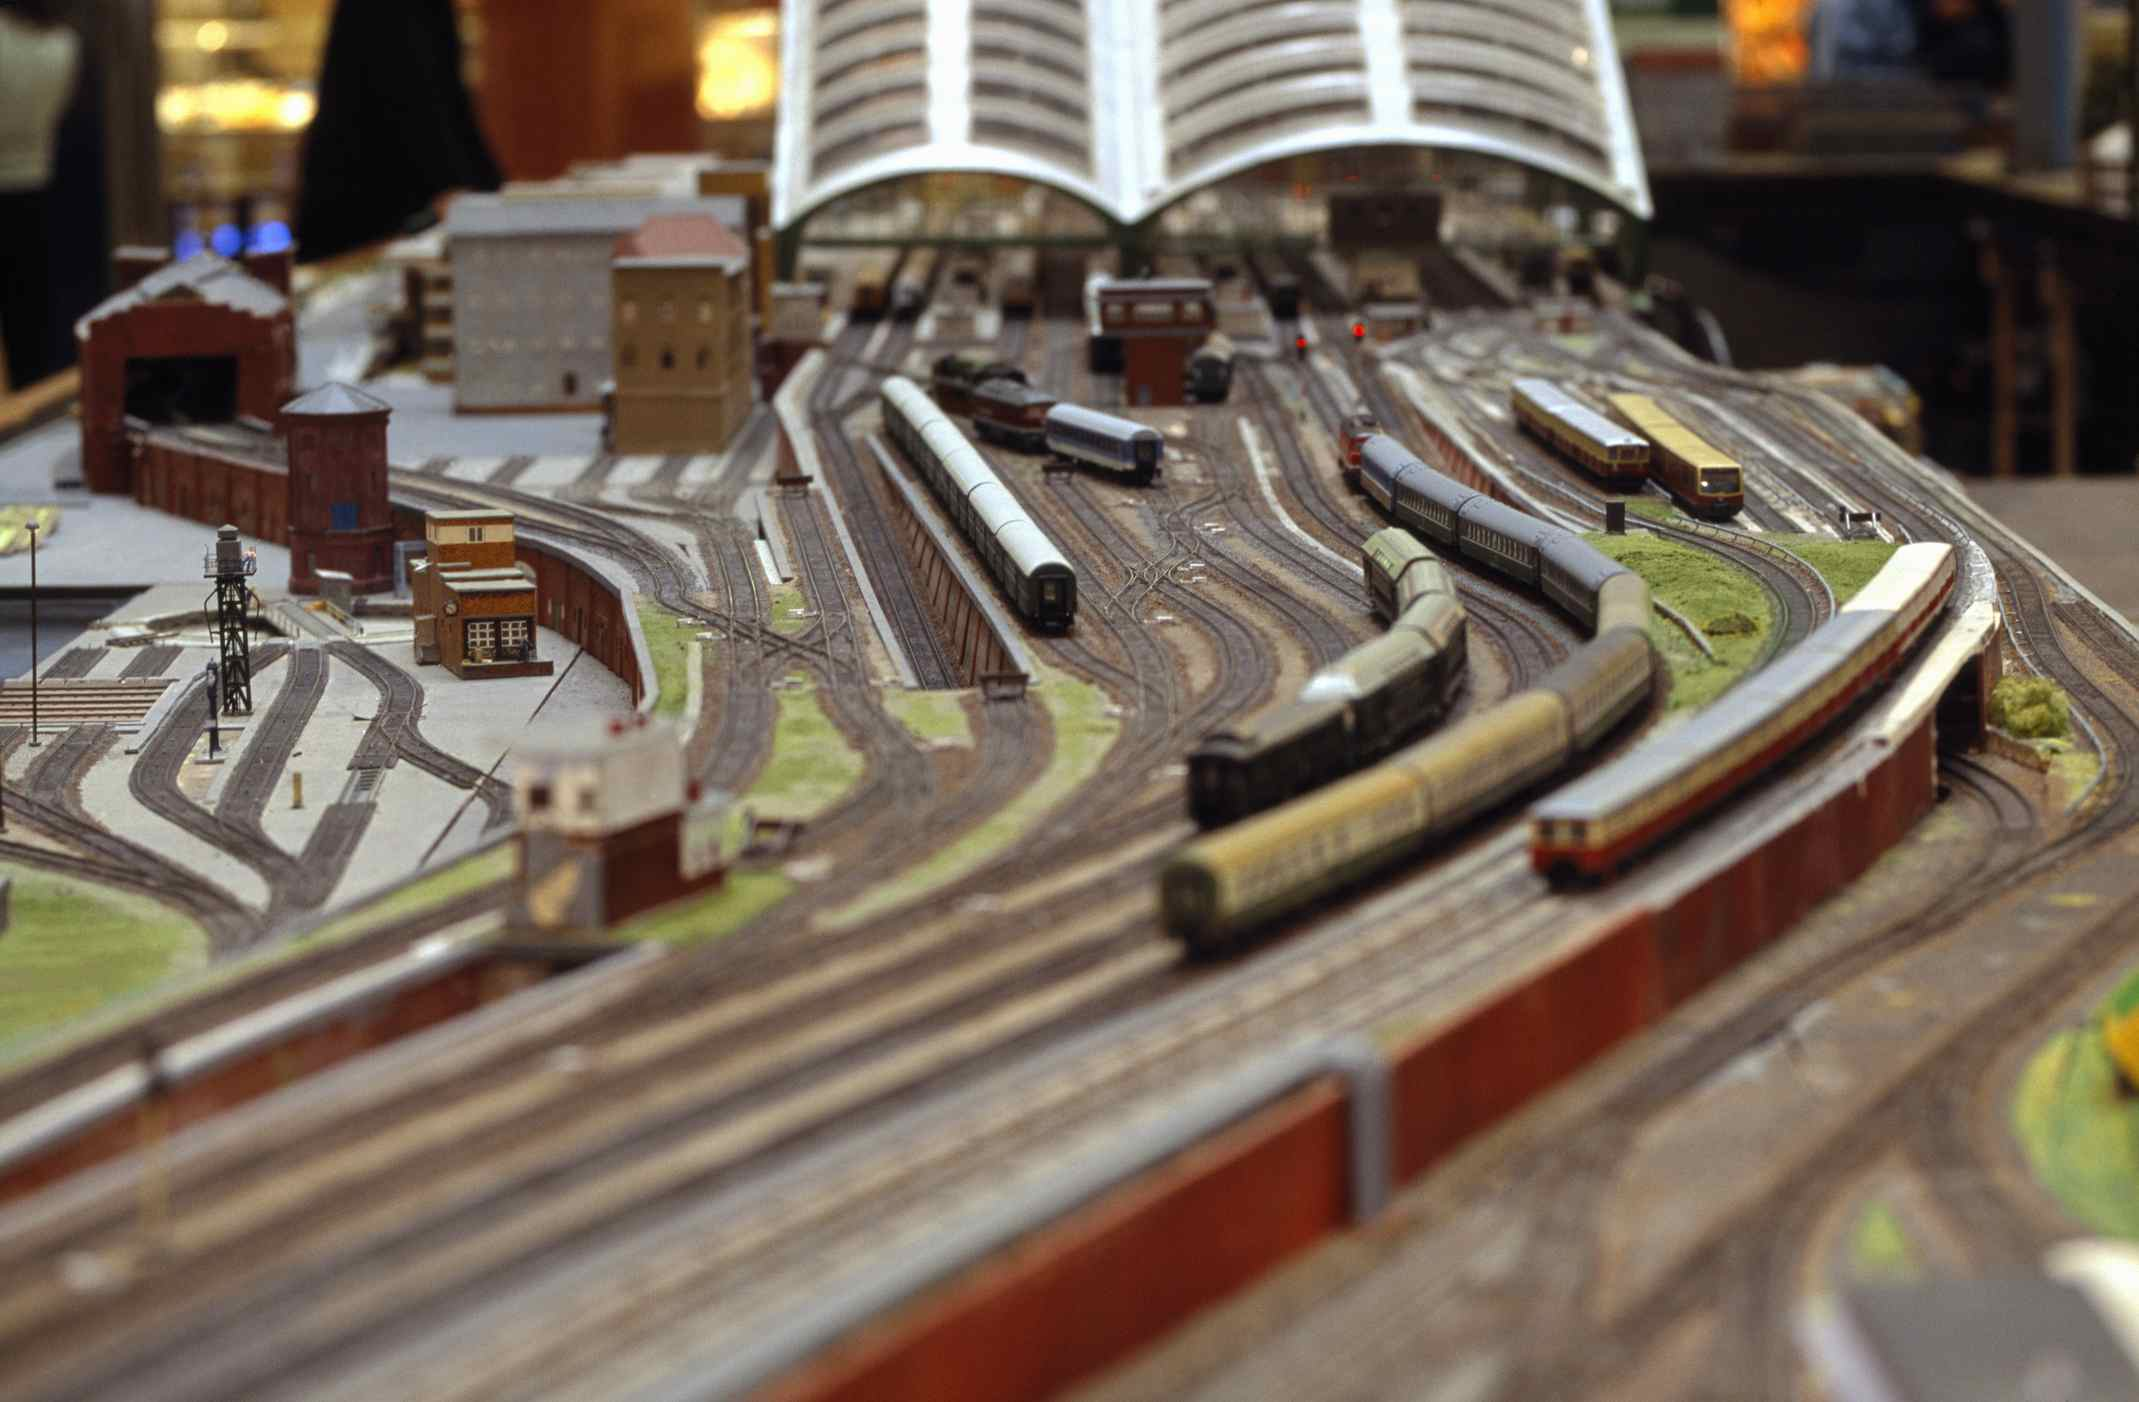 How To Wire A Model Railroad For Block Operation Connector Bus In Which You Can Screw The Ground And Switch Wires